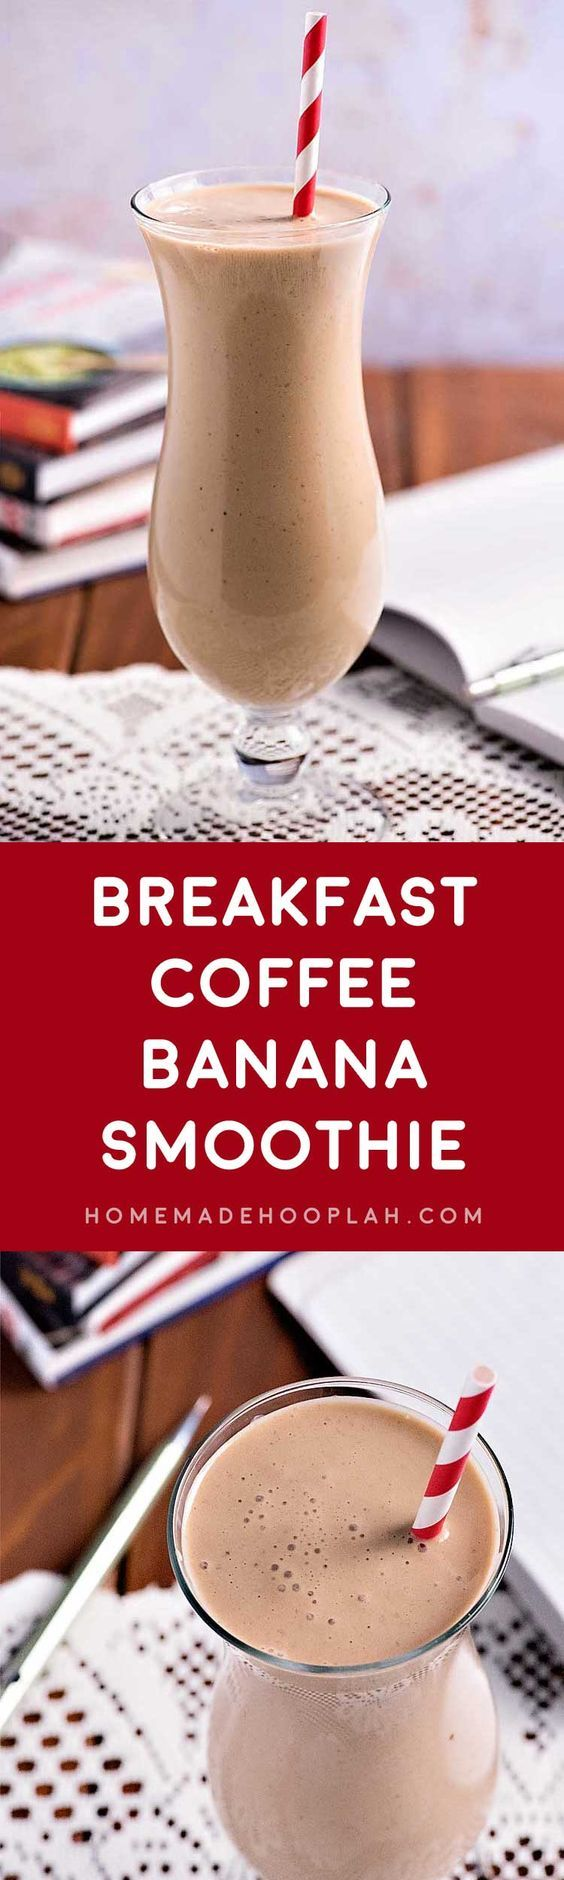 Breakfast Coffee Banana Smoothie Recipe... Kick start your morning (or your afternoon or evening!) with this easy smoothie made with bananas, yogurt, and Folgers Instant Coffee. It's the perfect indulgence whenever you need a quick pick-me-up.